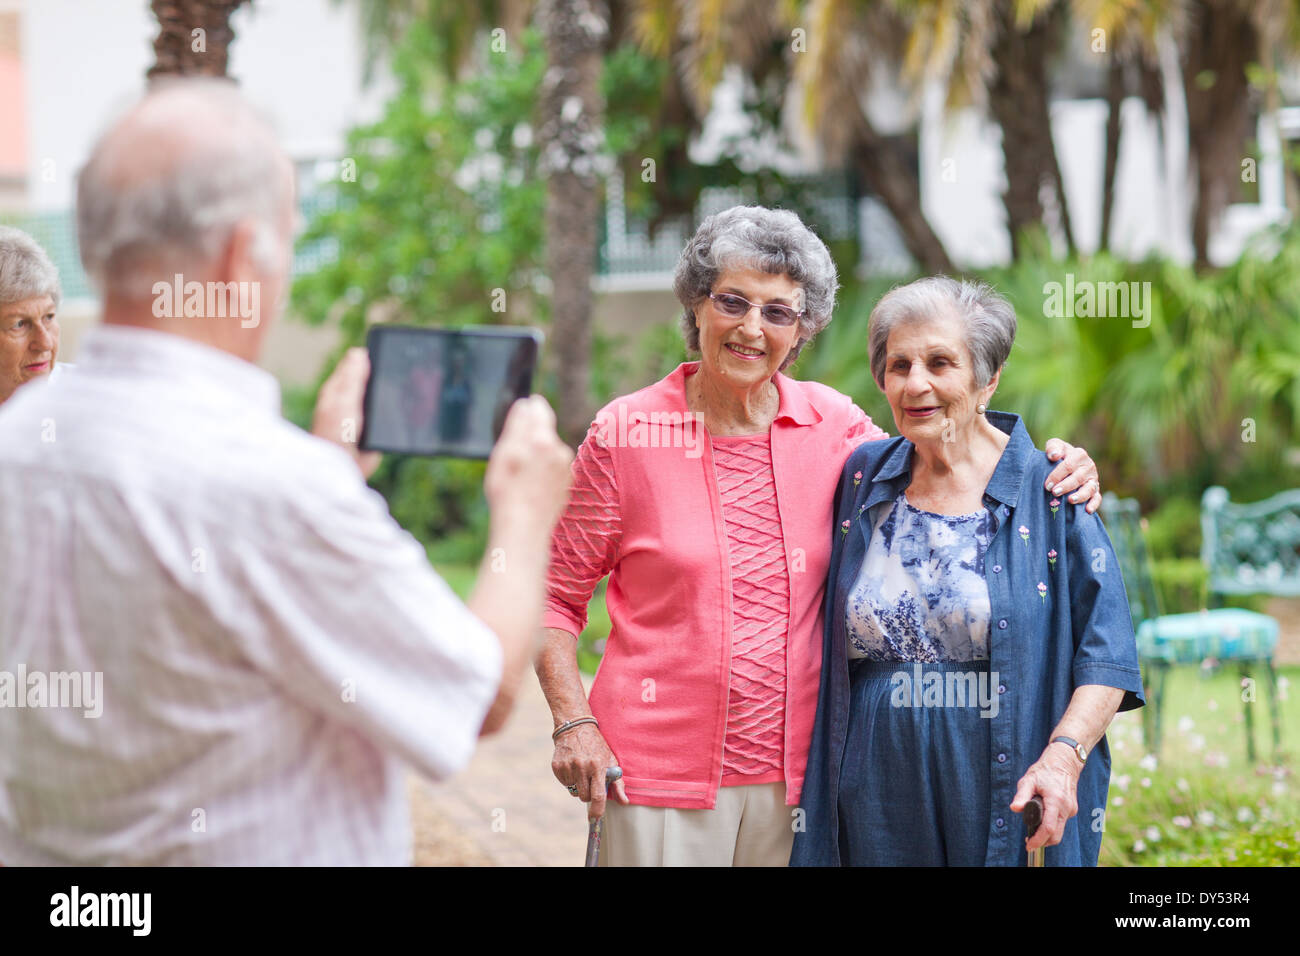 Senior man photographing friends in retirement villa garden - Stock Image